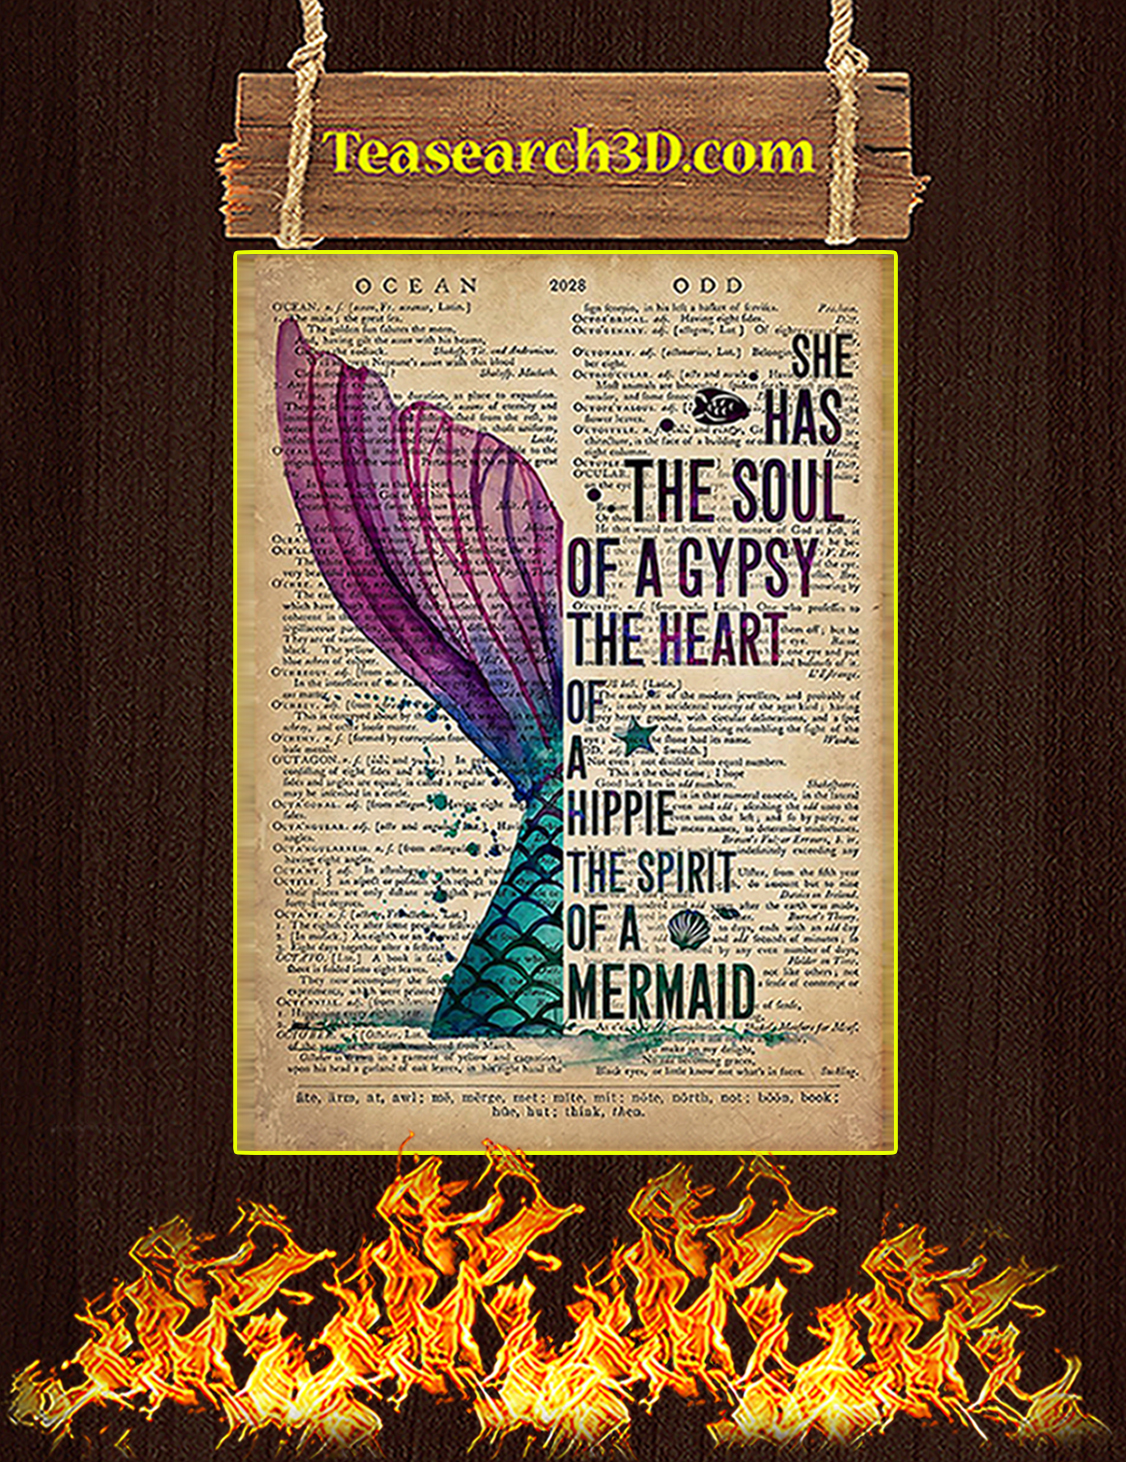 Mermaid She has the soul of a gypsy poster A3